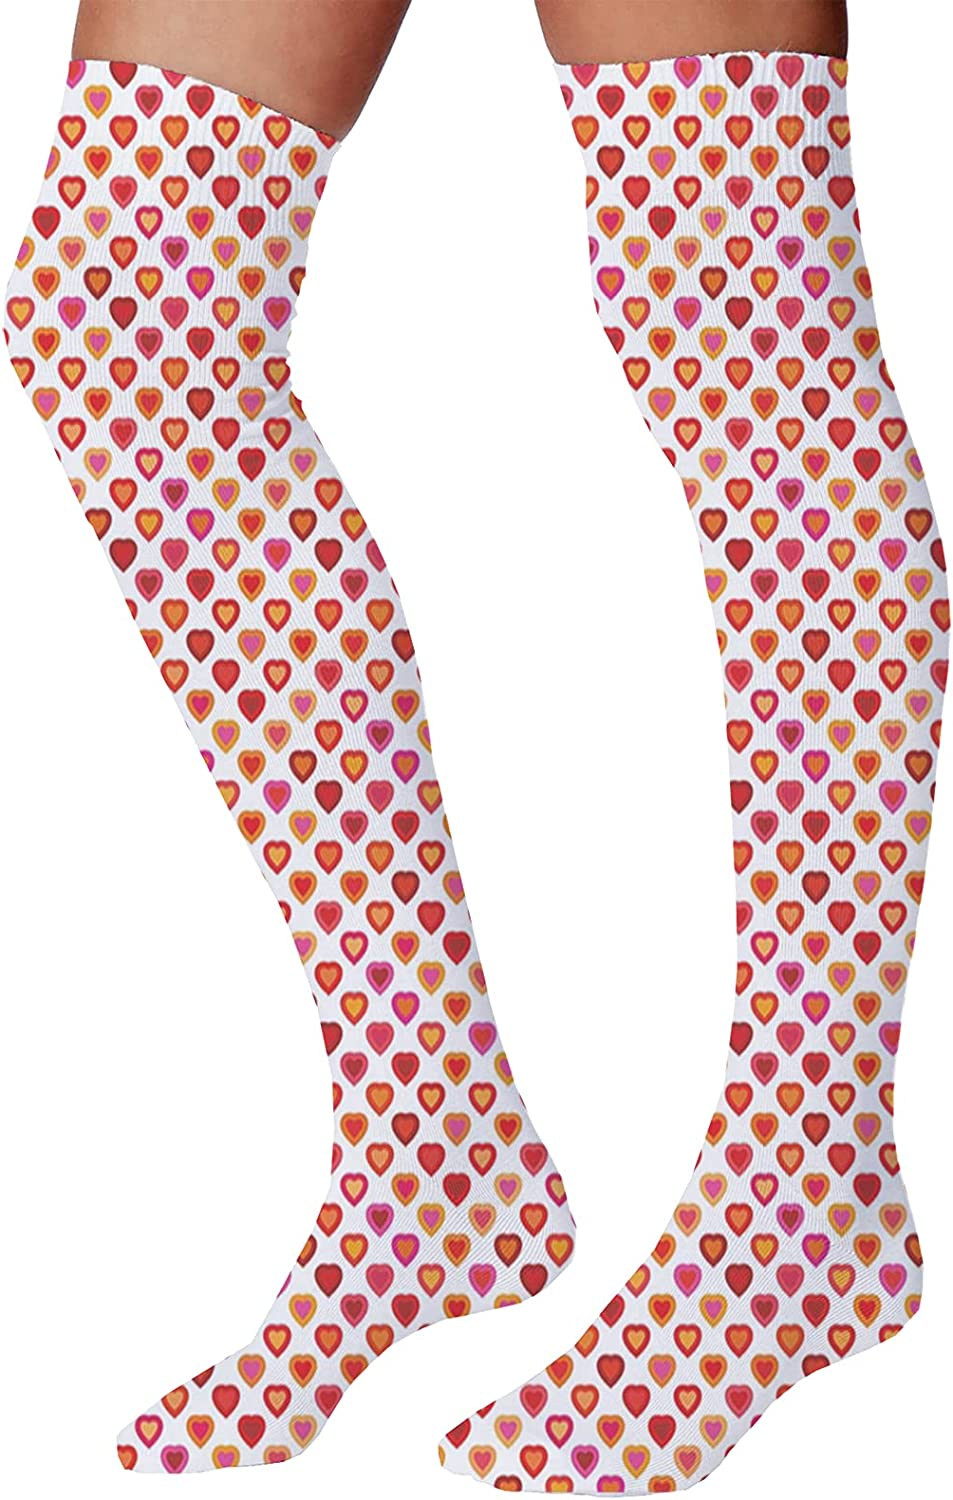 Men's and Women's Fun Socks,Love Peace Themed Text Pacifist Line Political Hippie Groovy Artistic Design